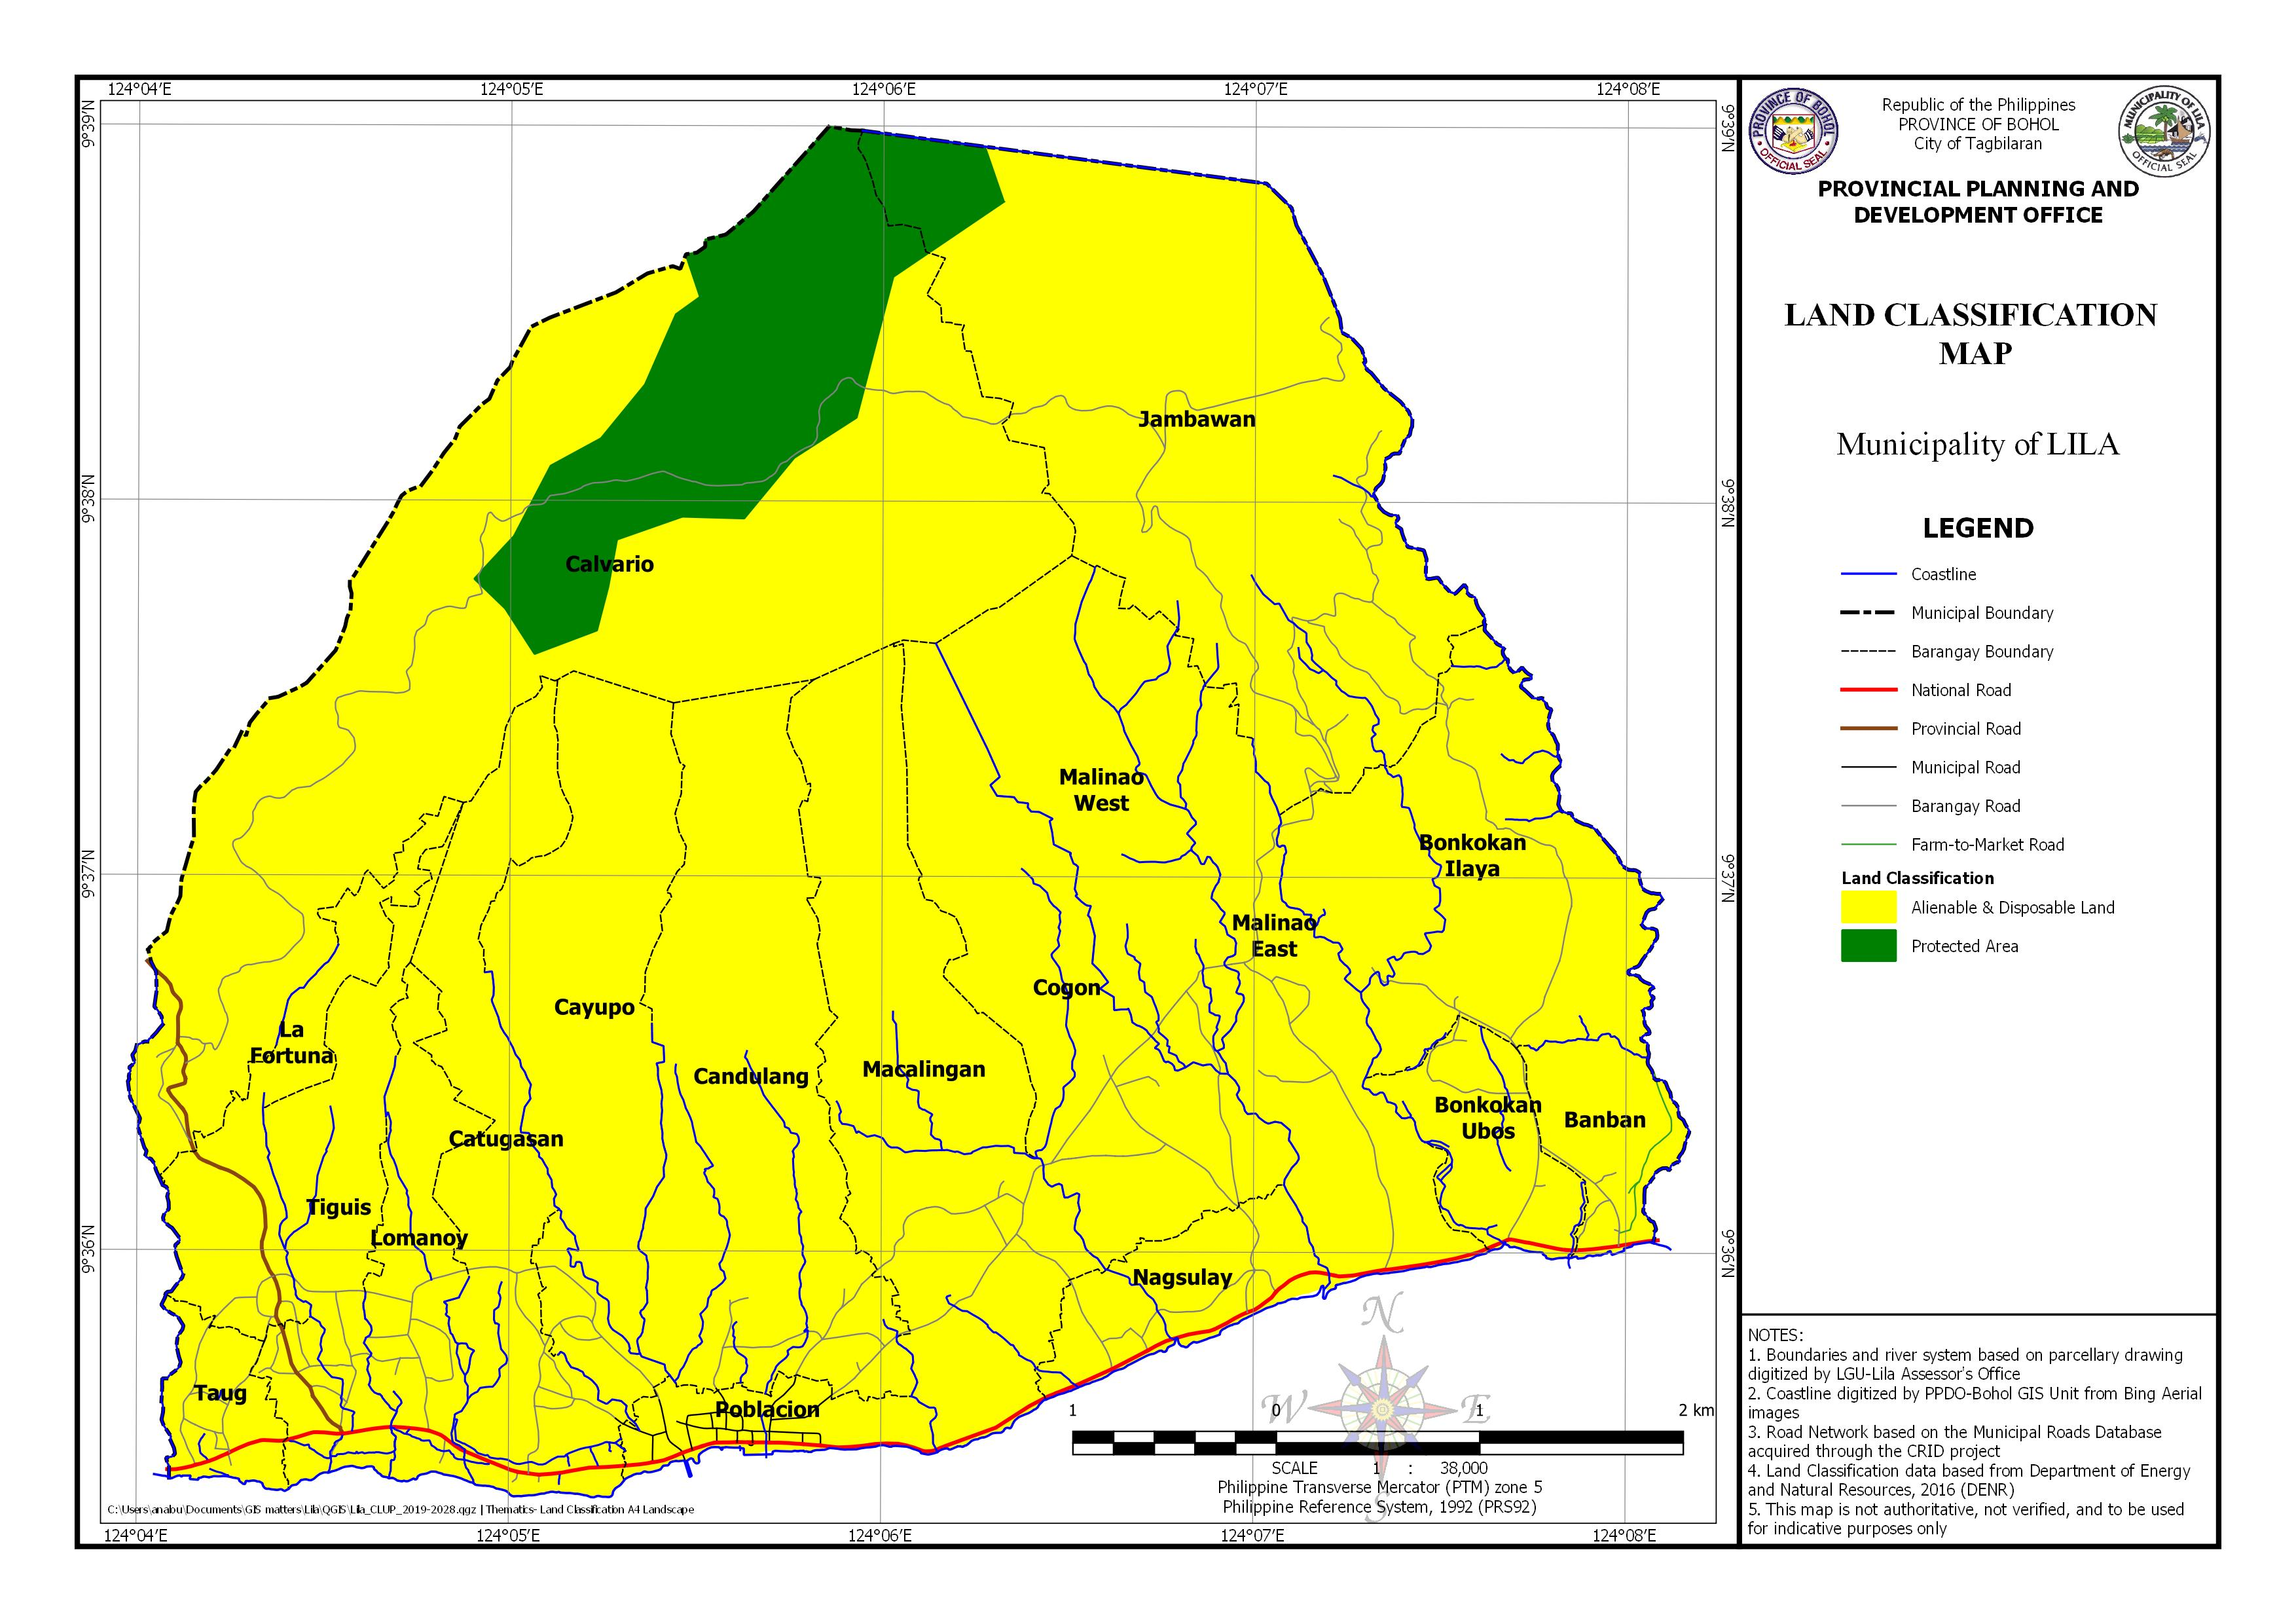 Land Classisfication Map